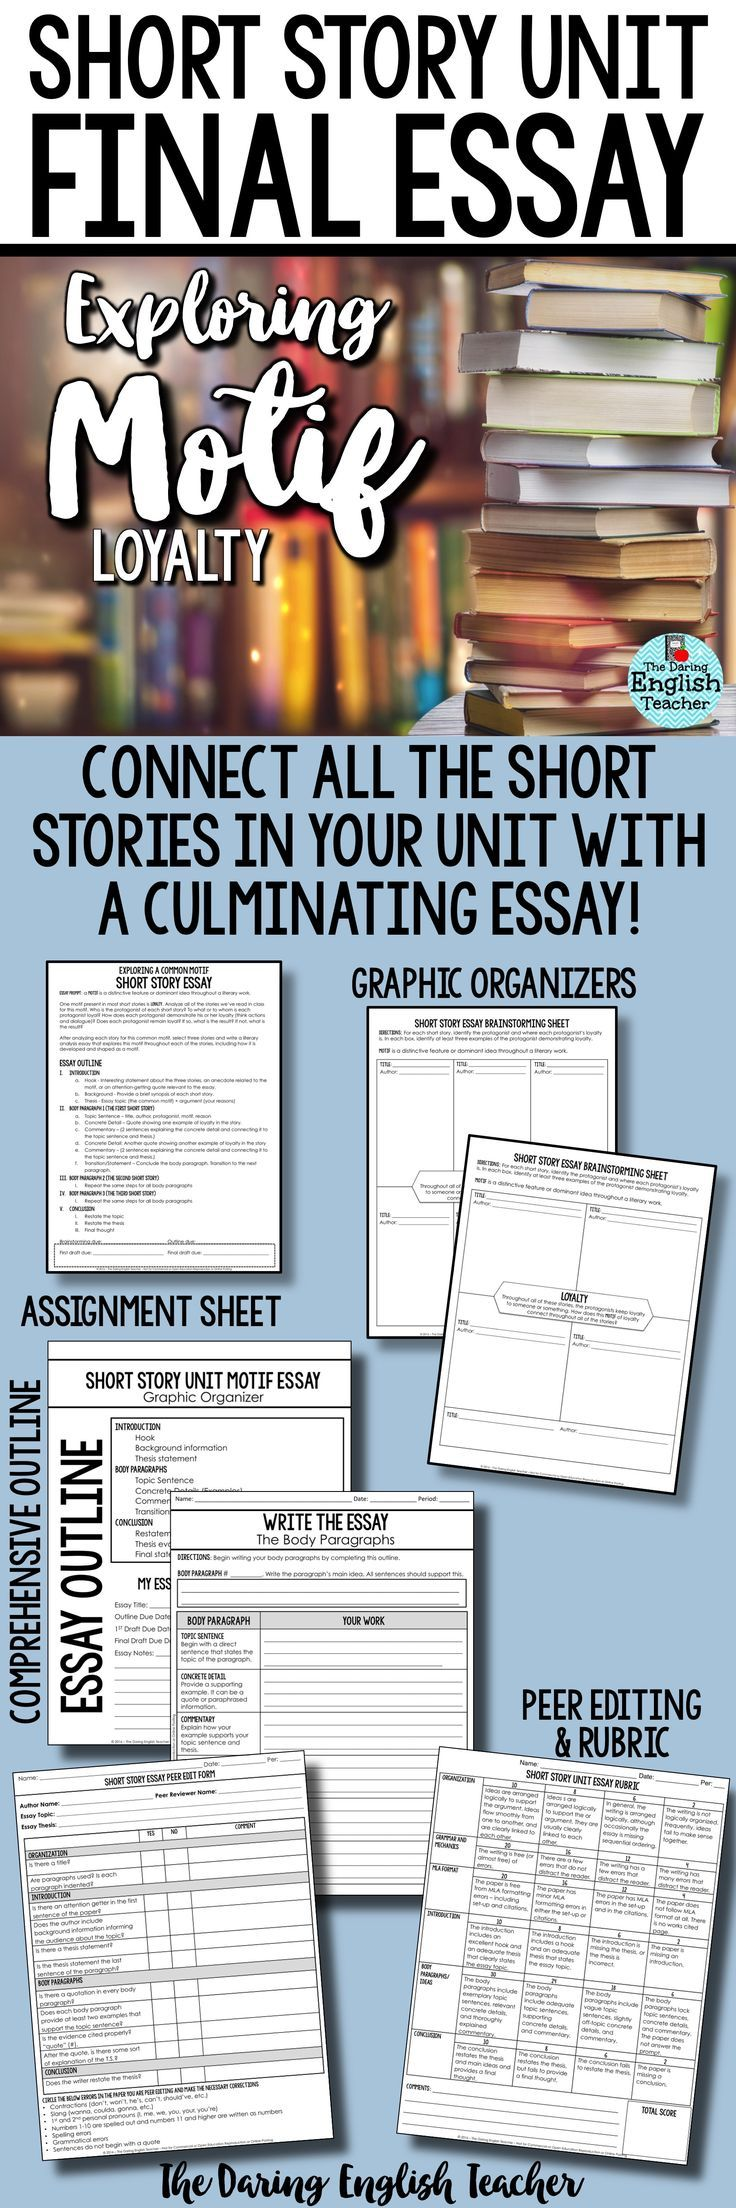 best short stories for high school students images on  short story unit final essay analyzing motif loyalty